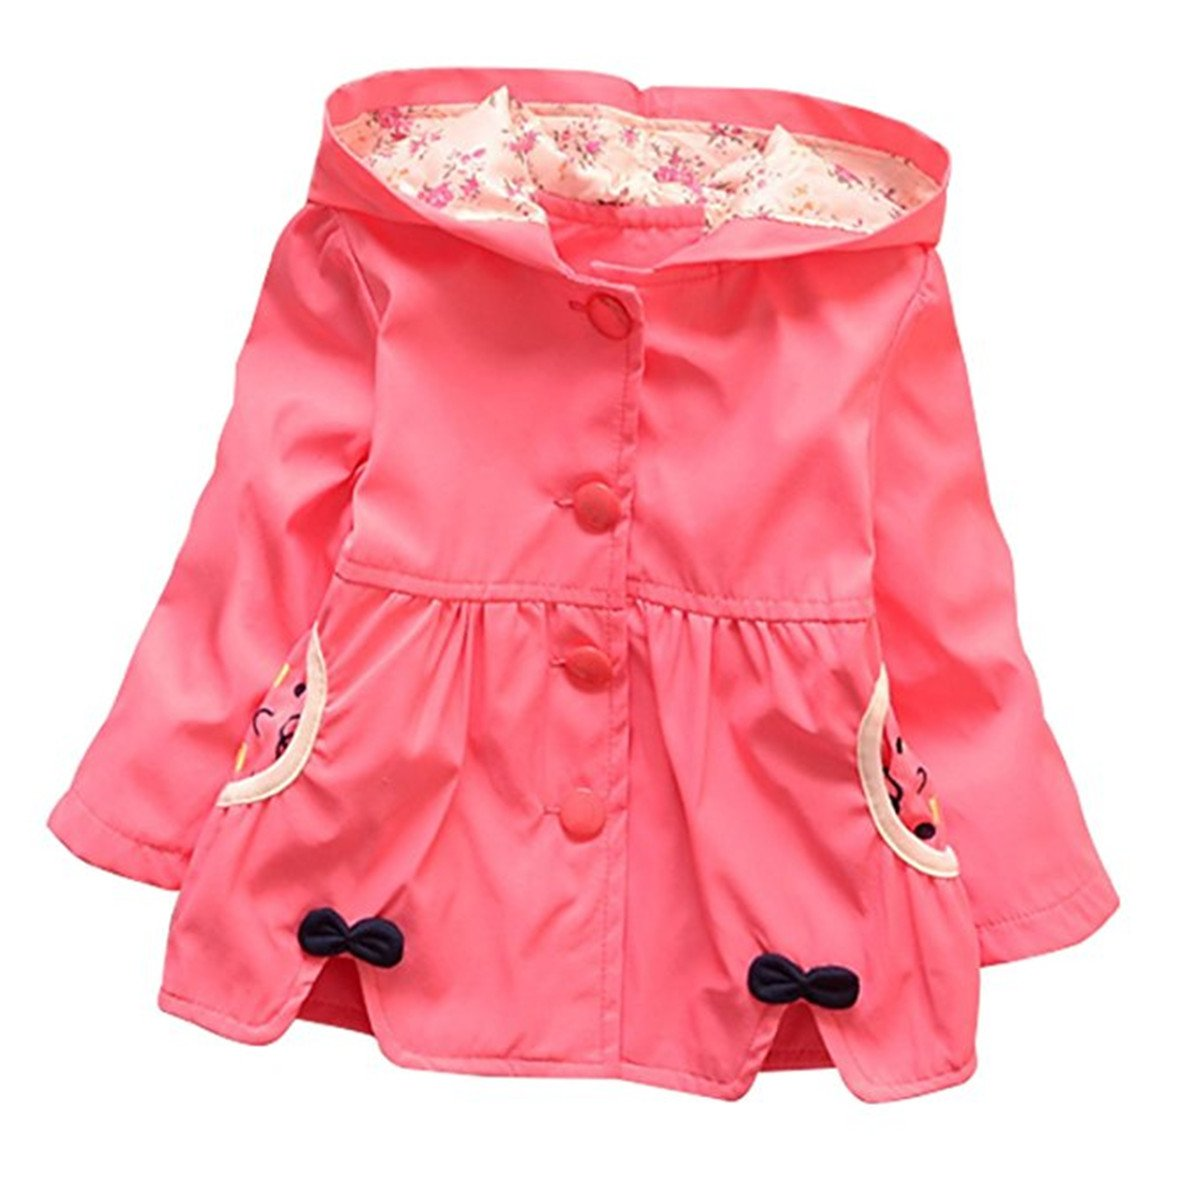 Baby Kid Little Girls Spring Fall Coat Smiling Face Hooded Jacket Coat Outerwear WINDB33e